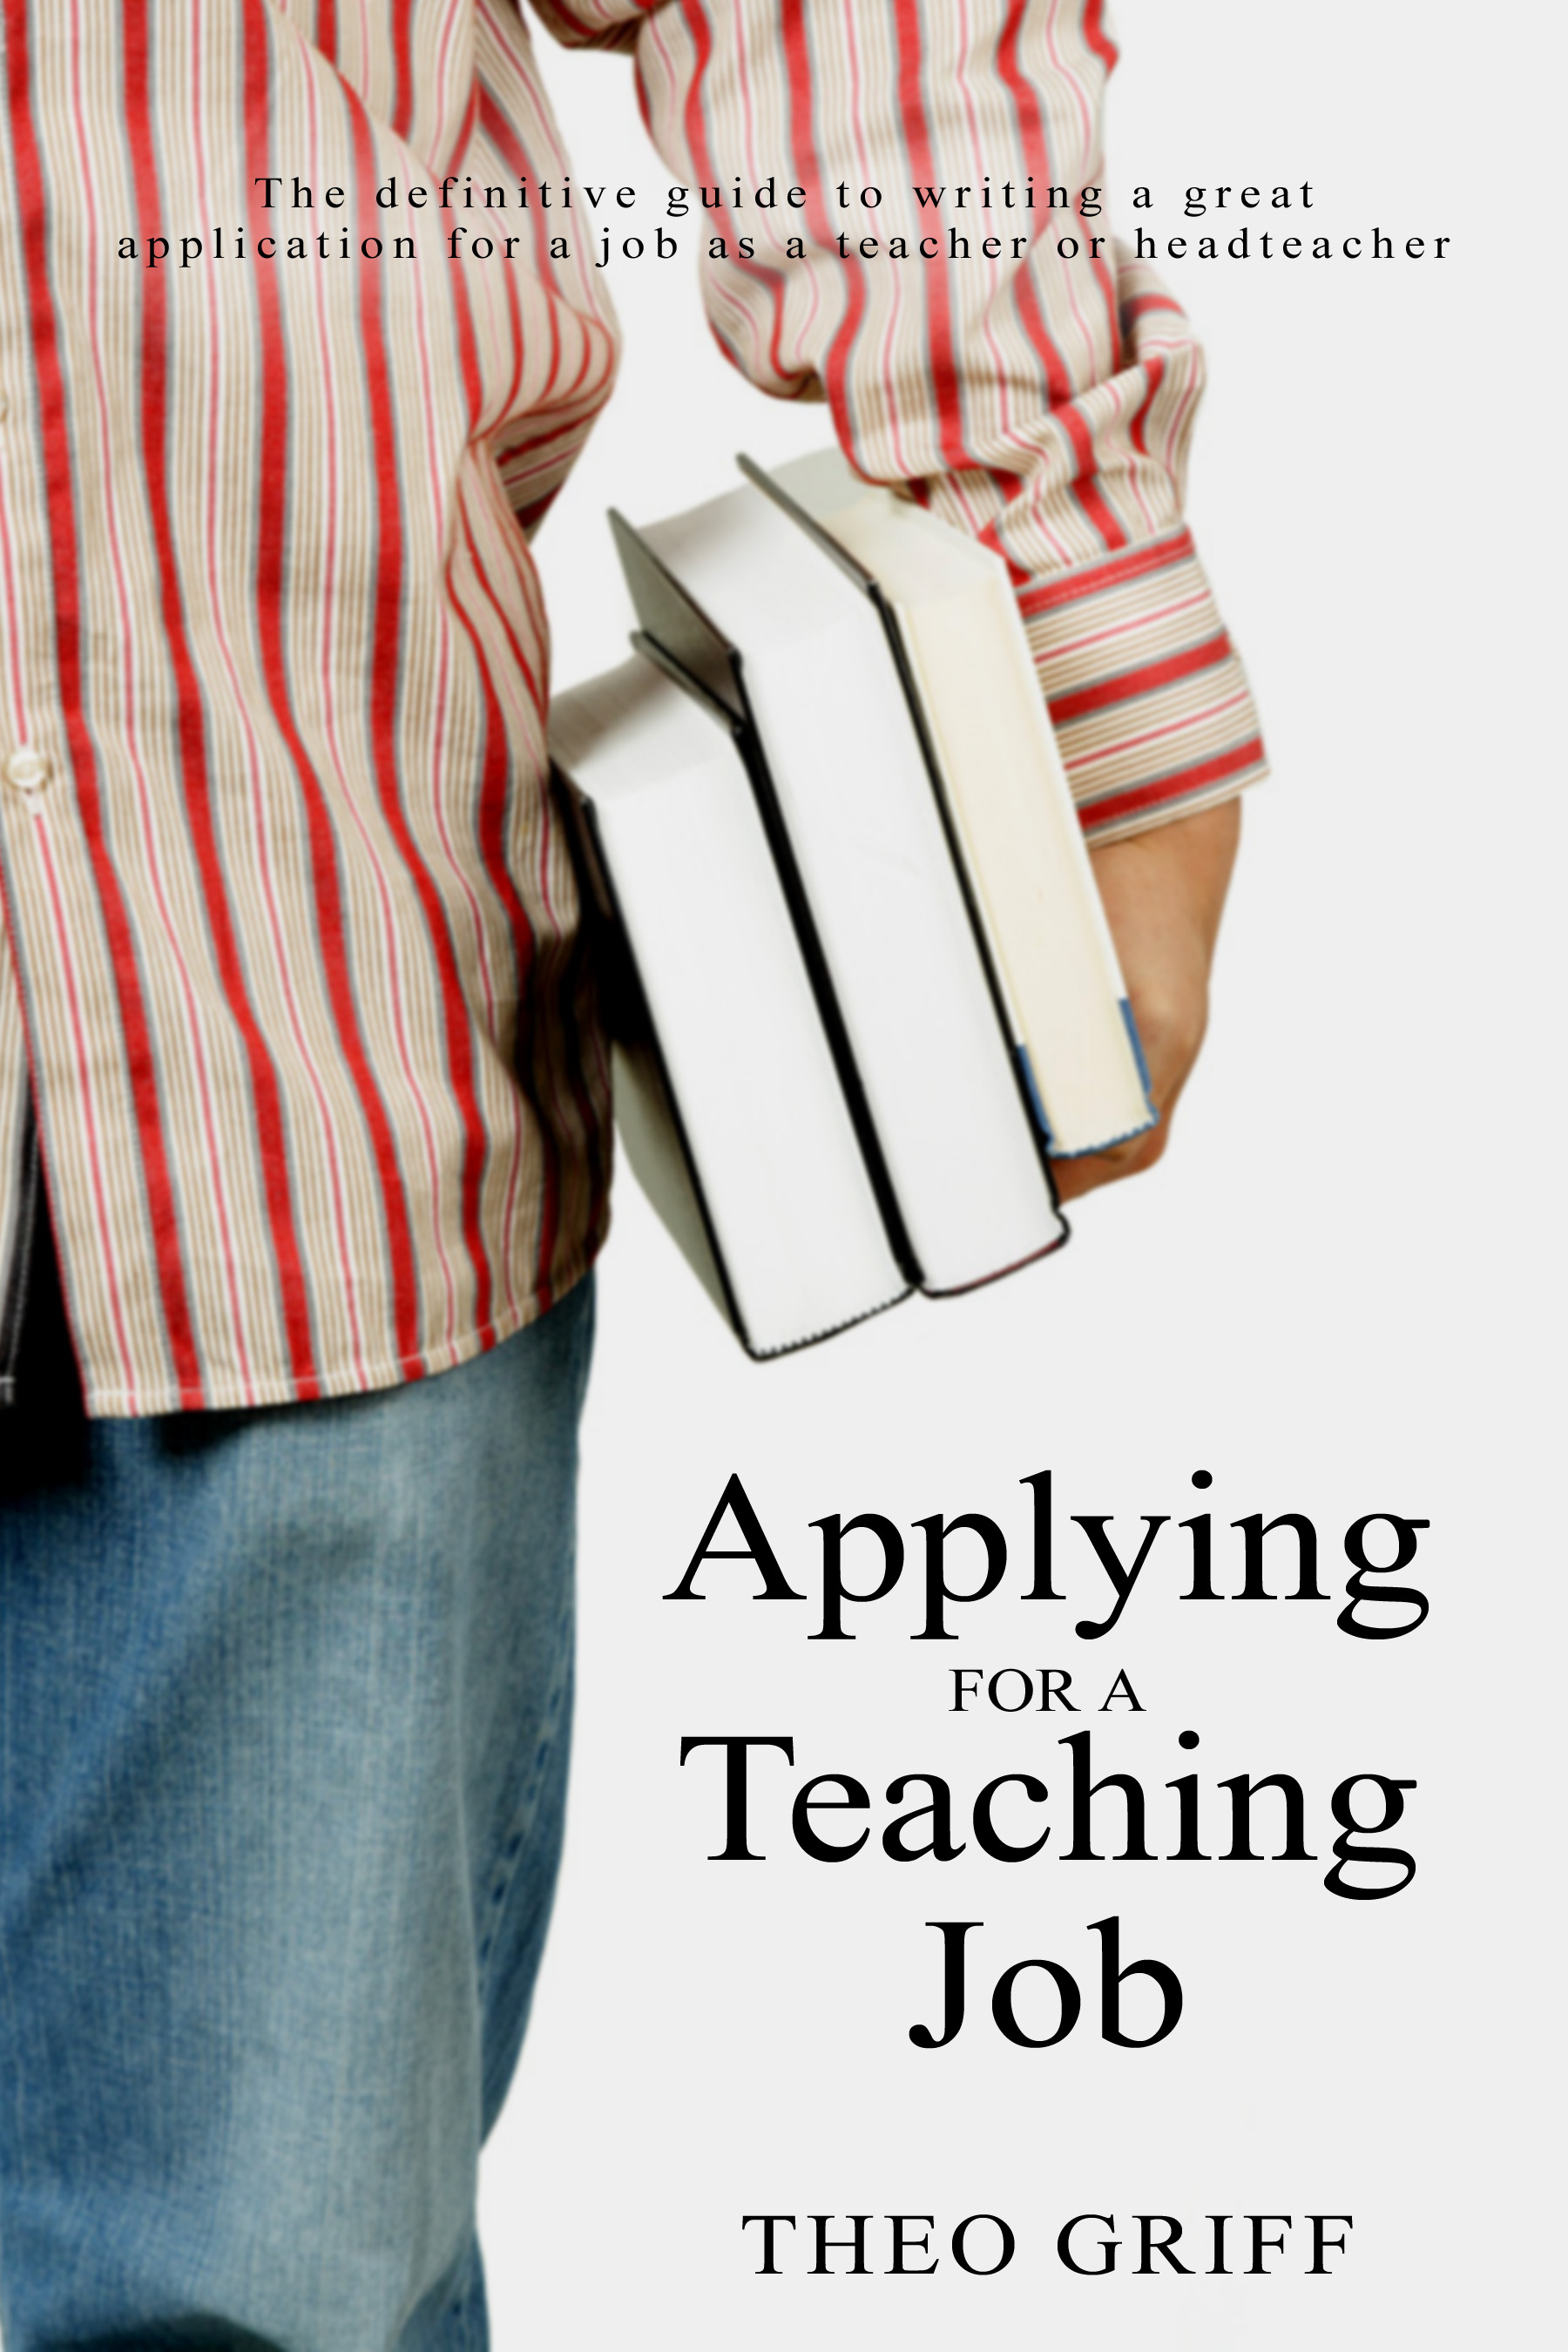 Applying for a teaching job: